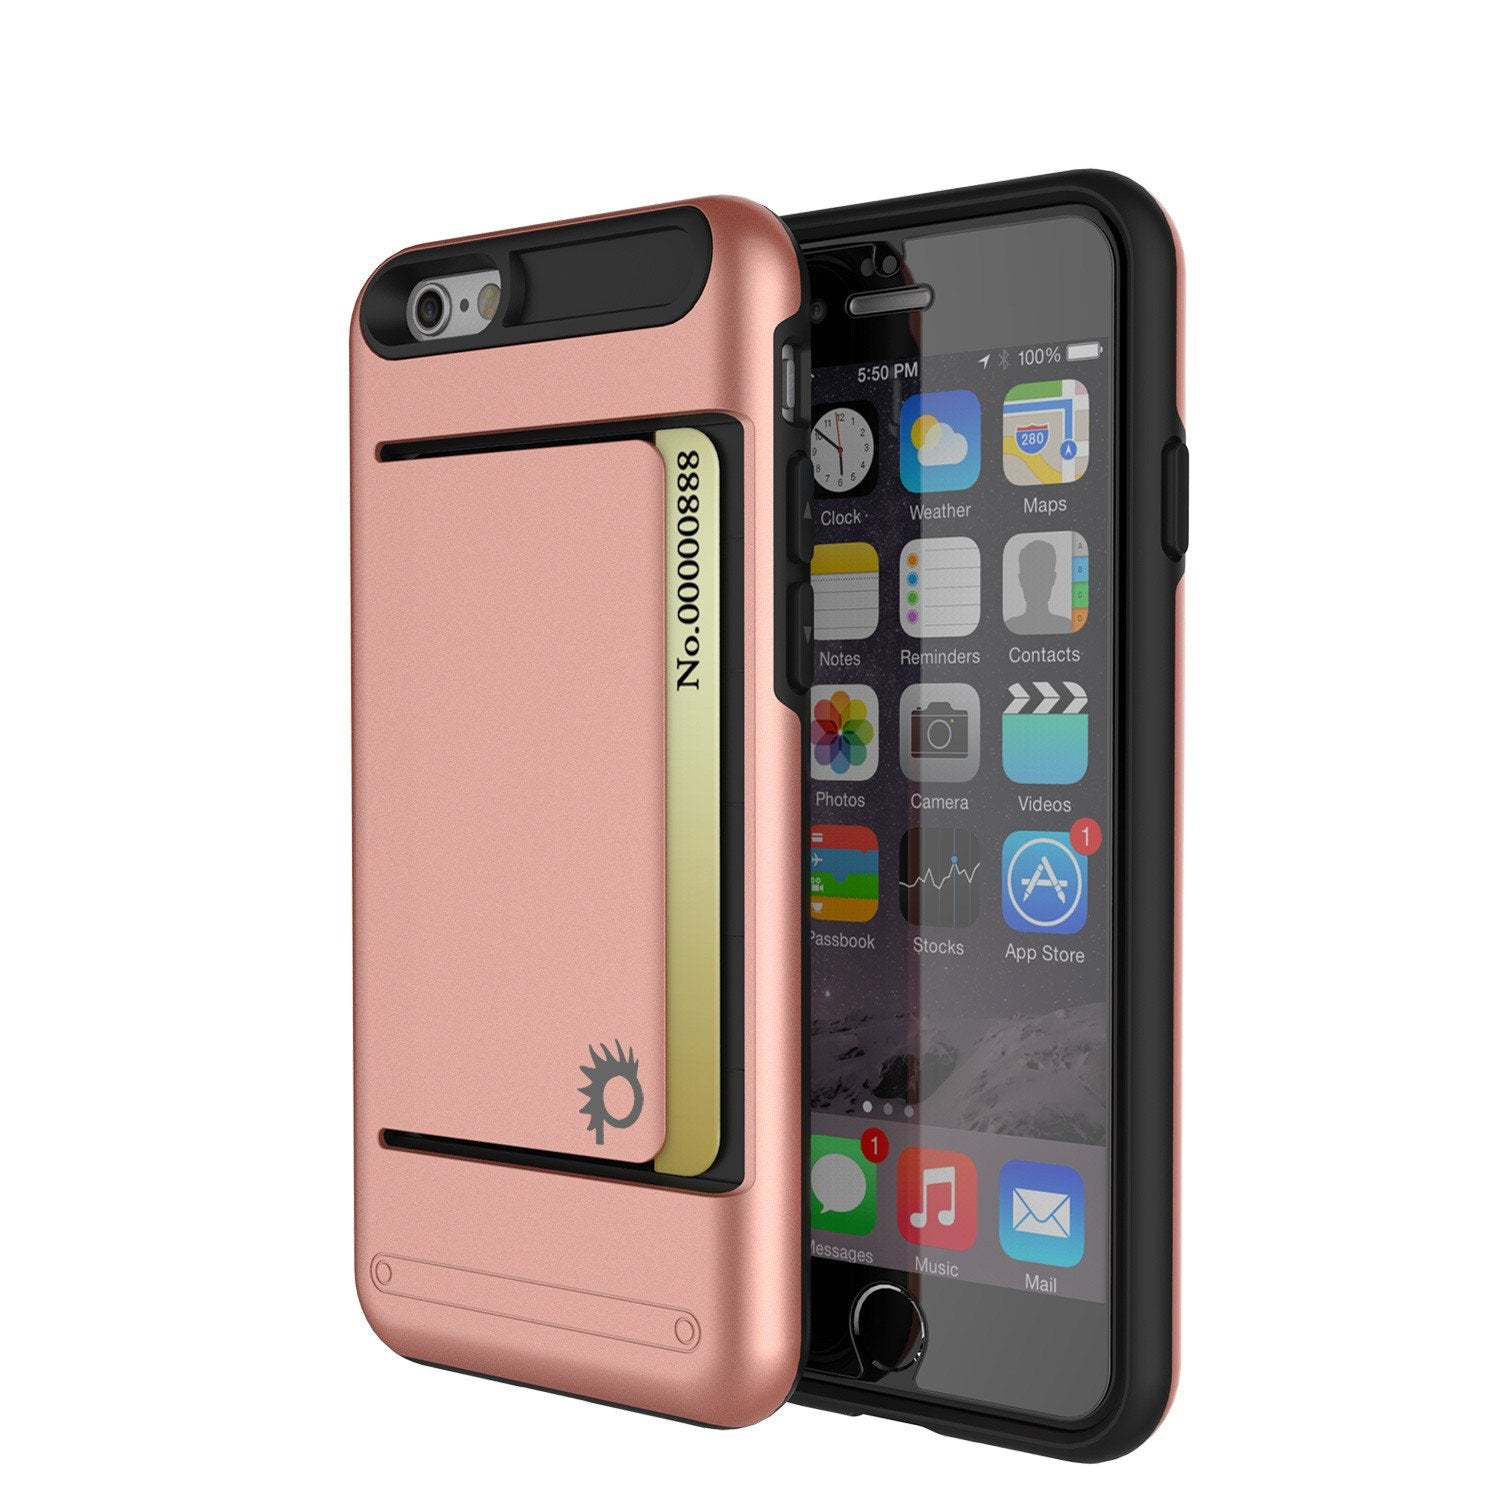 iPhone 6/6s Case PunkCase CLUTCH Rose Gold Series Slim Armor Soft Cover Case w/ Tempered Glass